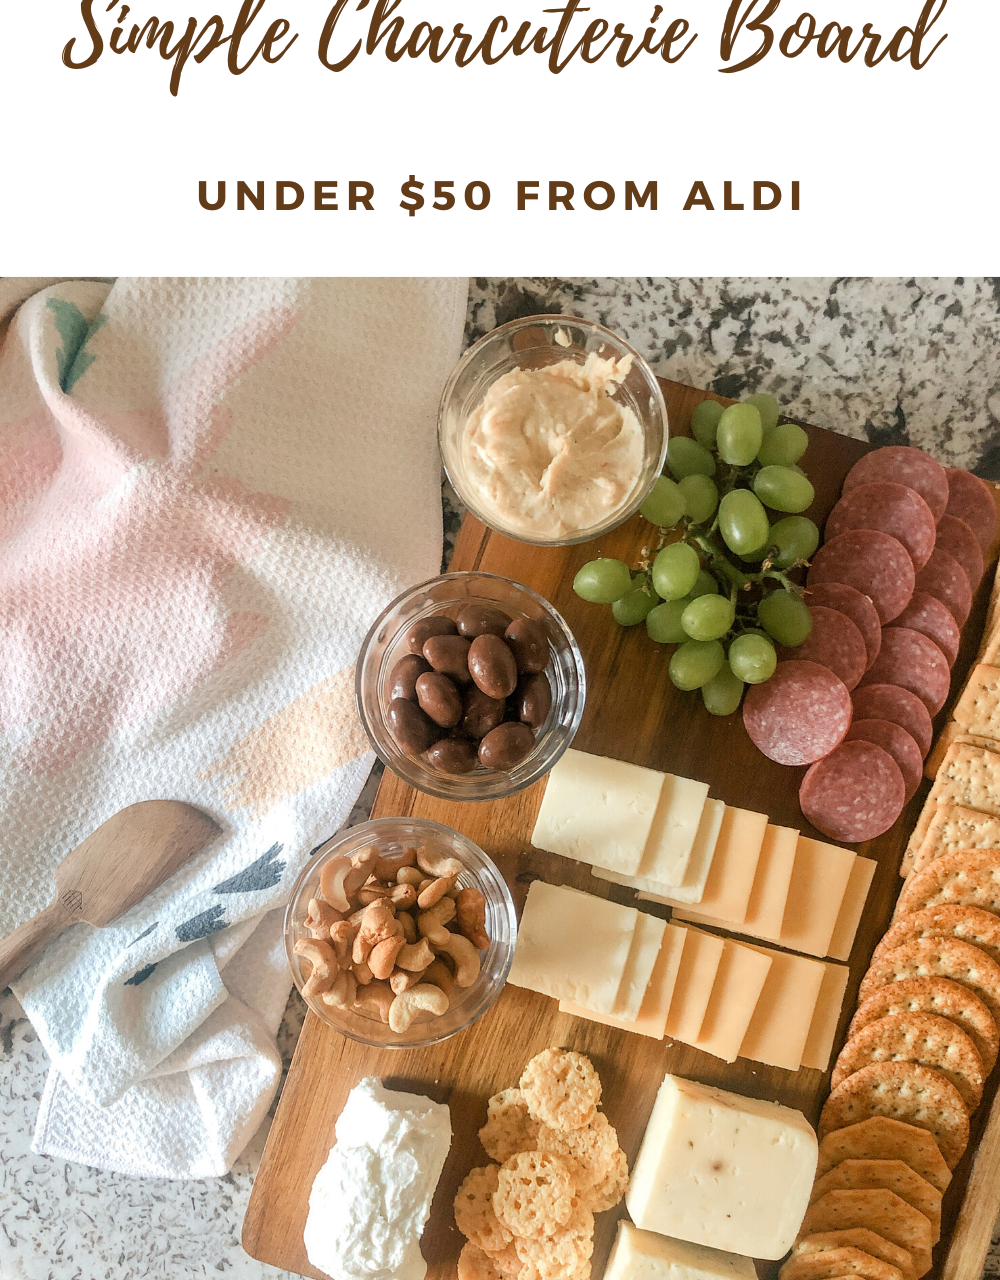 How to Build a Simple Charcuterie Board from Aldi Under $50